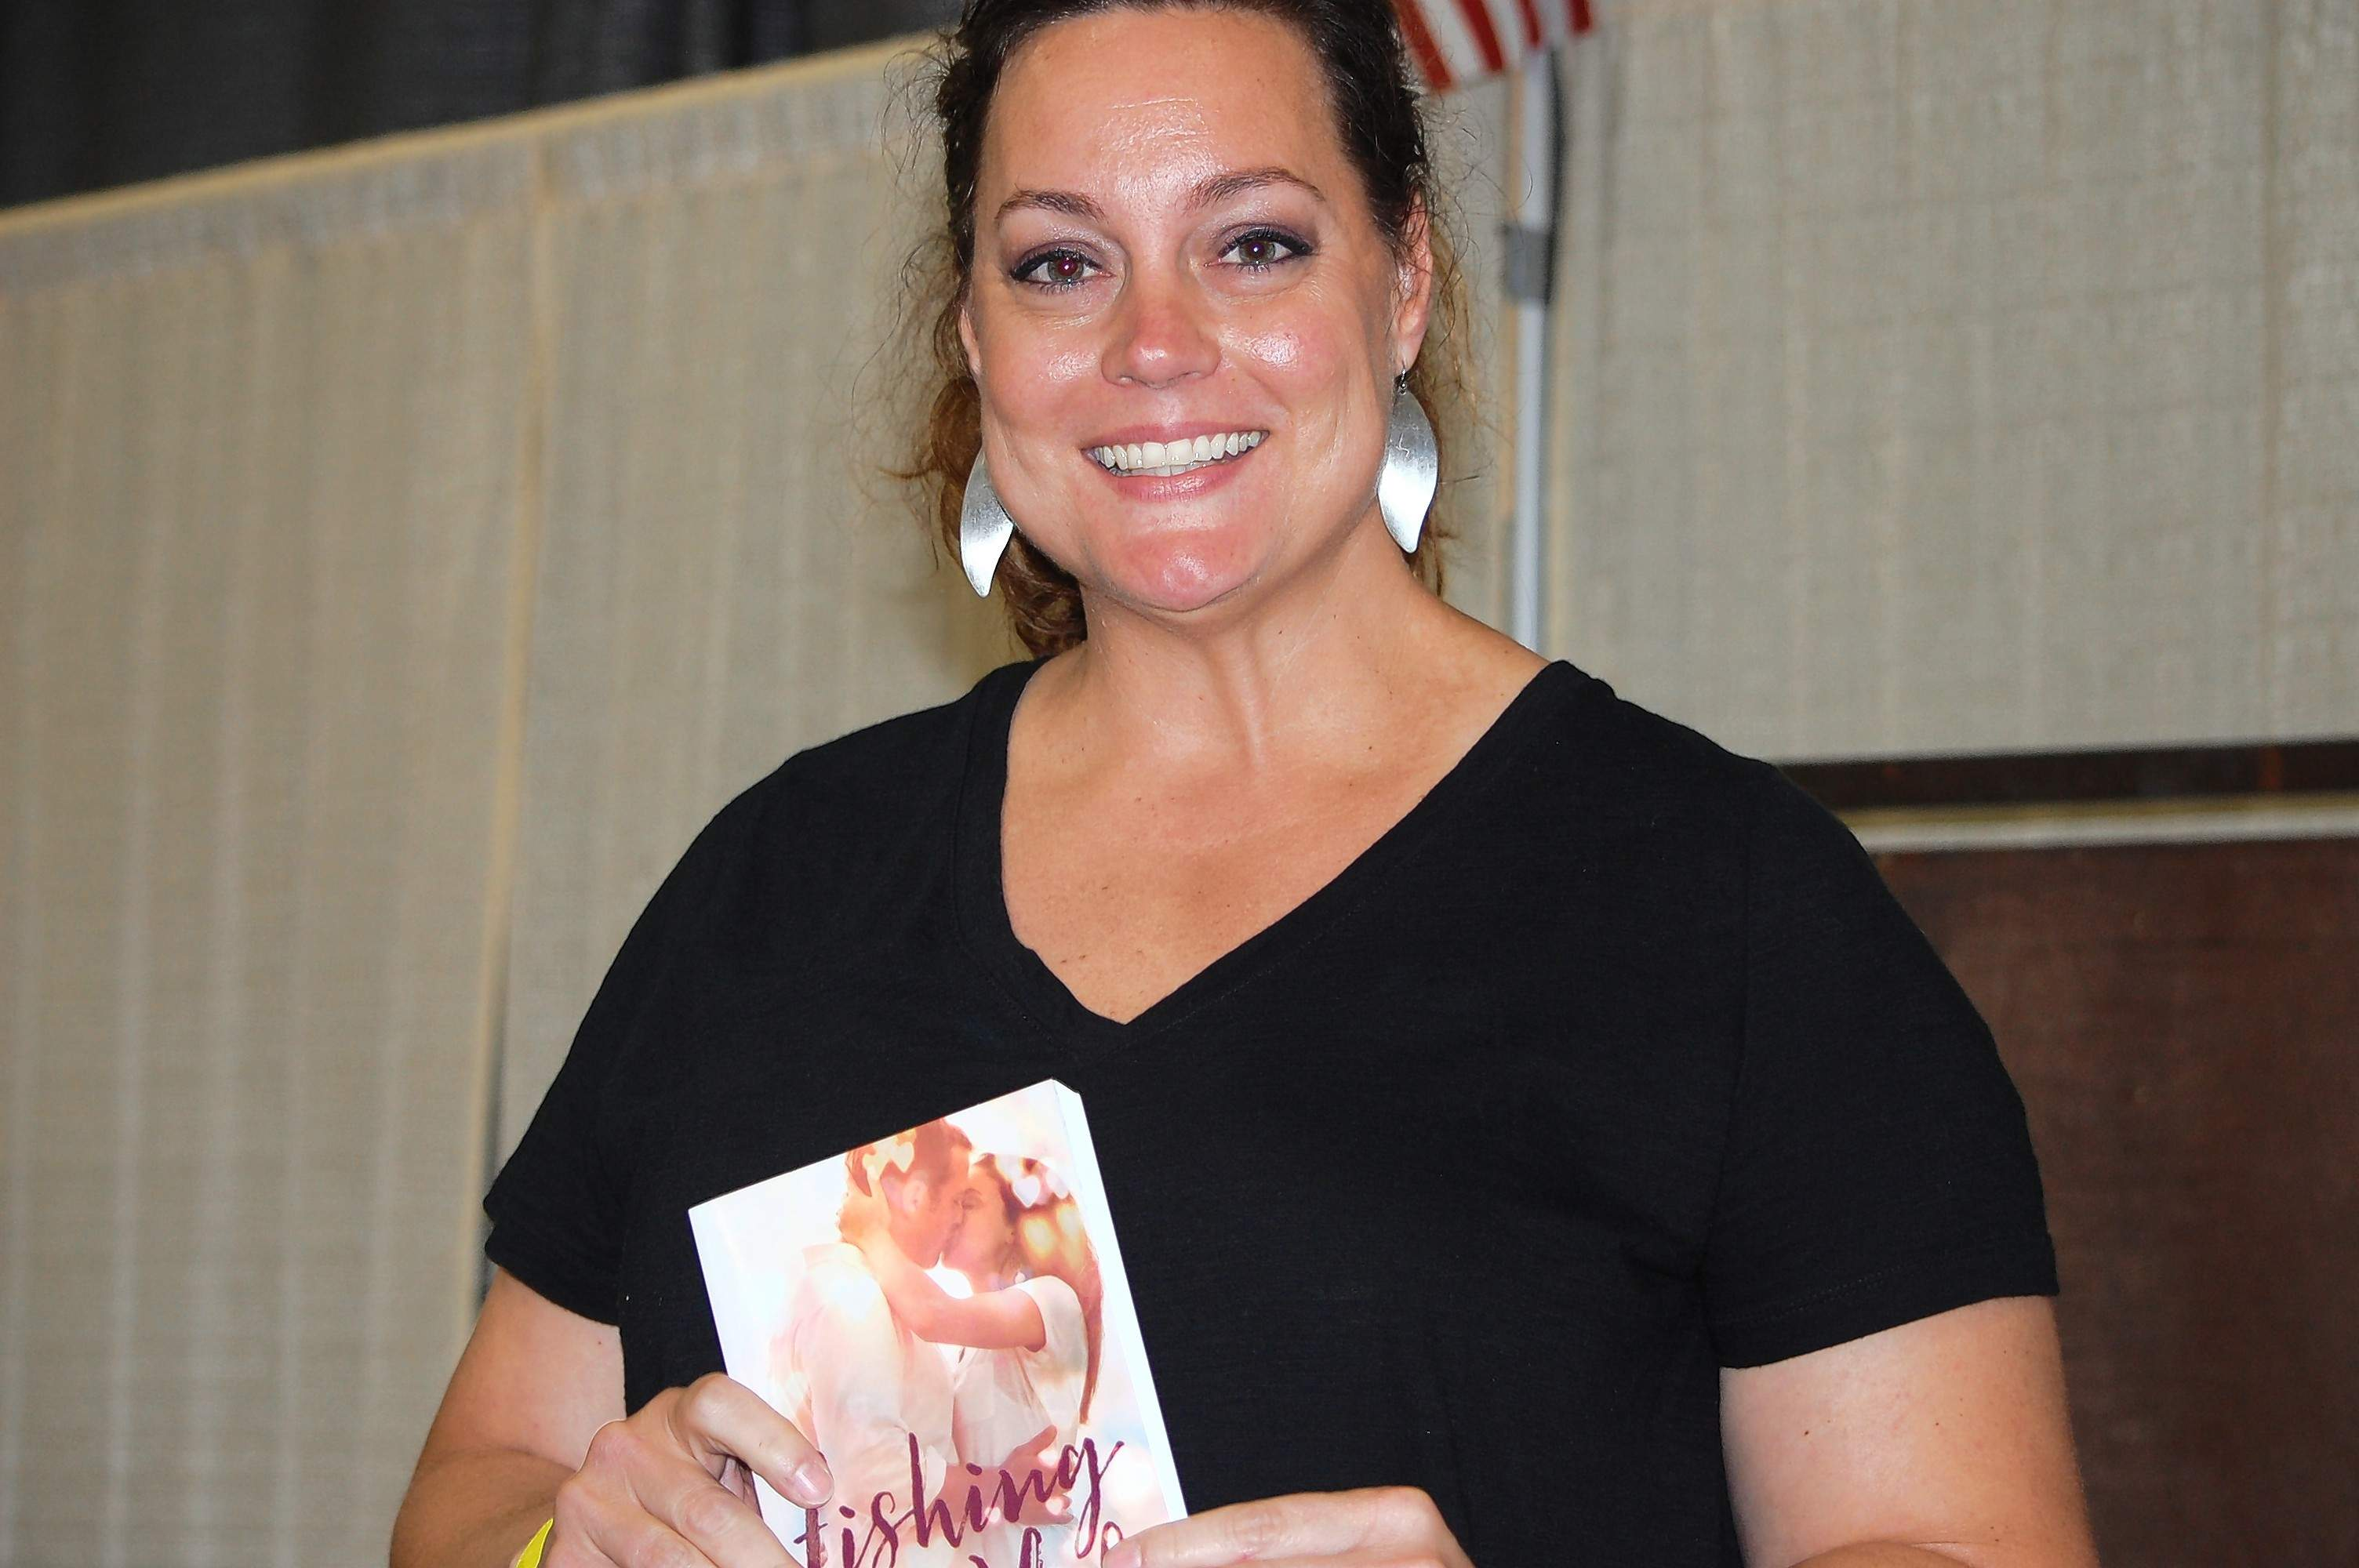 Local author Hillary DeVisser holds one of her novels. DeVisser was one of the many vendors featured at the Southern Illinois Made Expo over the weekend at The Pavilion in Marion.